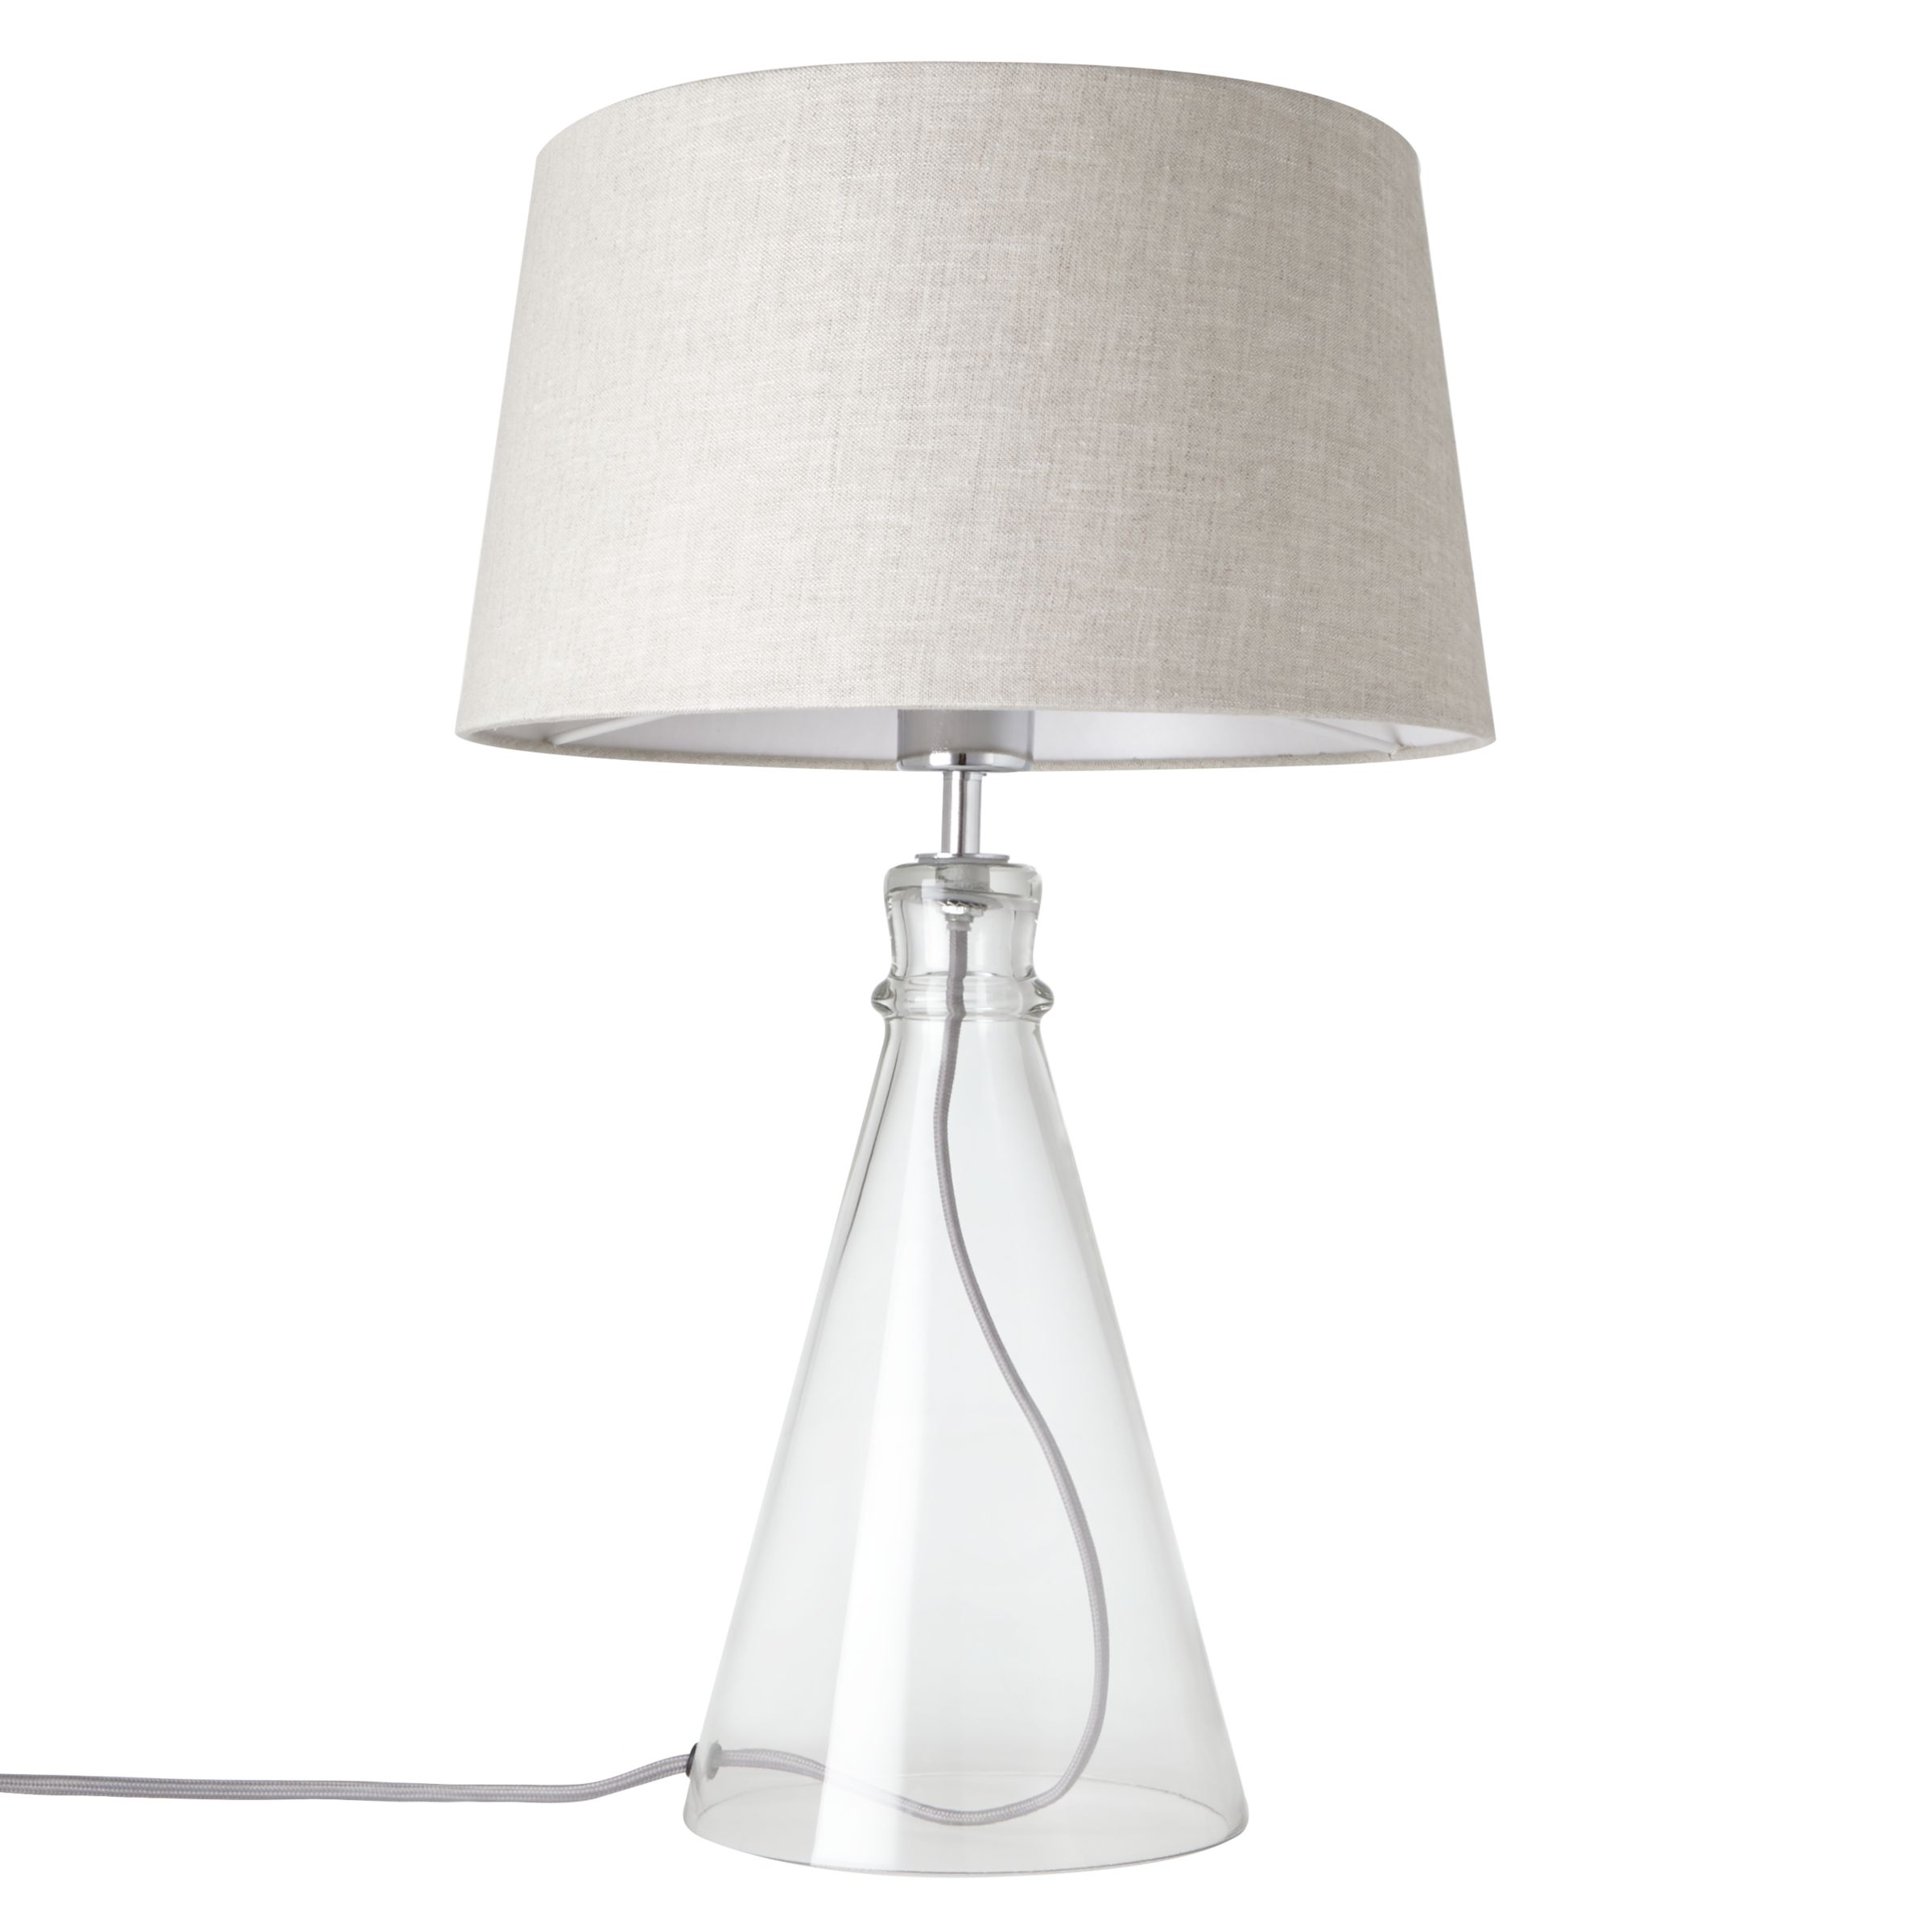 Glass Lamp John Lewis Croft Collection Abel Glass Bell Table Lamp At John Lewis